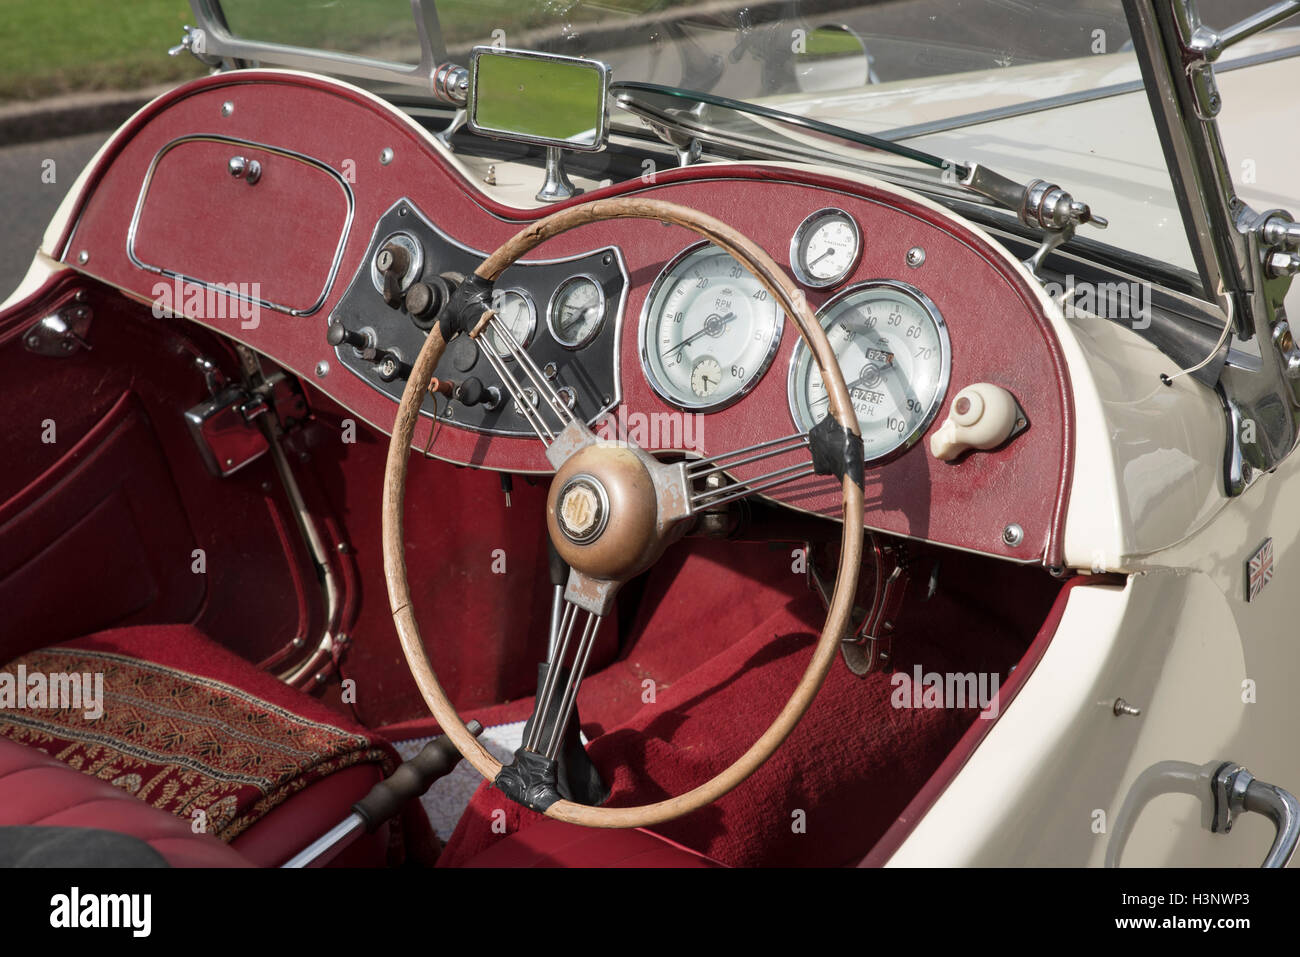 british veteran mg tc sports car red interior dashboard steering stock photo royalty free image. Black Bedroom Furniture Sets. Home Design Ideas